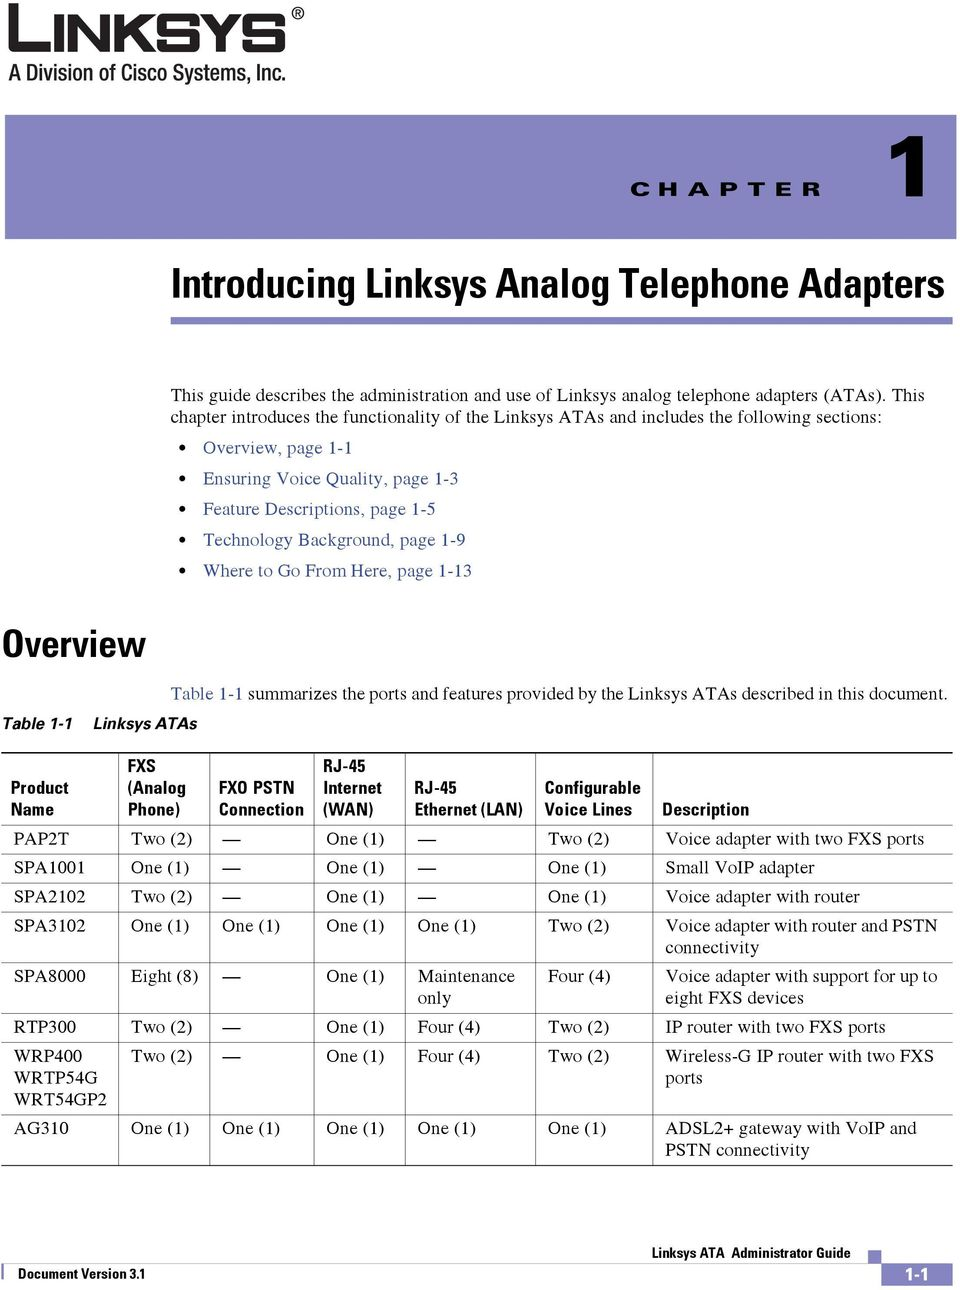 Background, page 1-9 Where to Go From Here, page 1-13 Overview Table 1-1 Linksys ATAs Table 1-1 summarizes the ports and features provided by the Linksys ATAs described in this document.